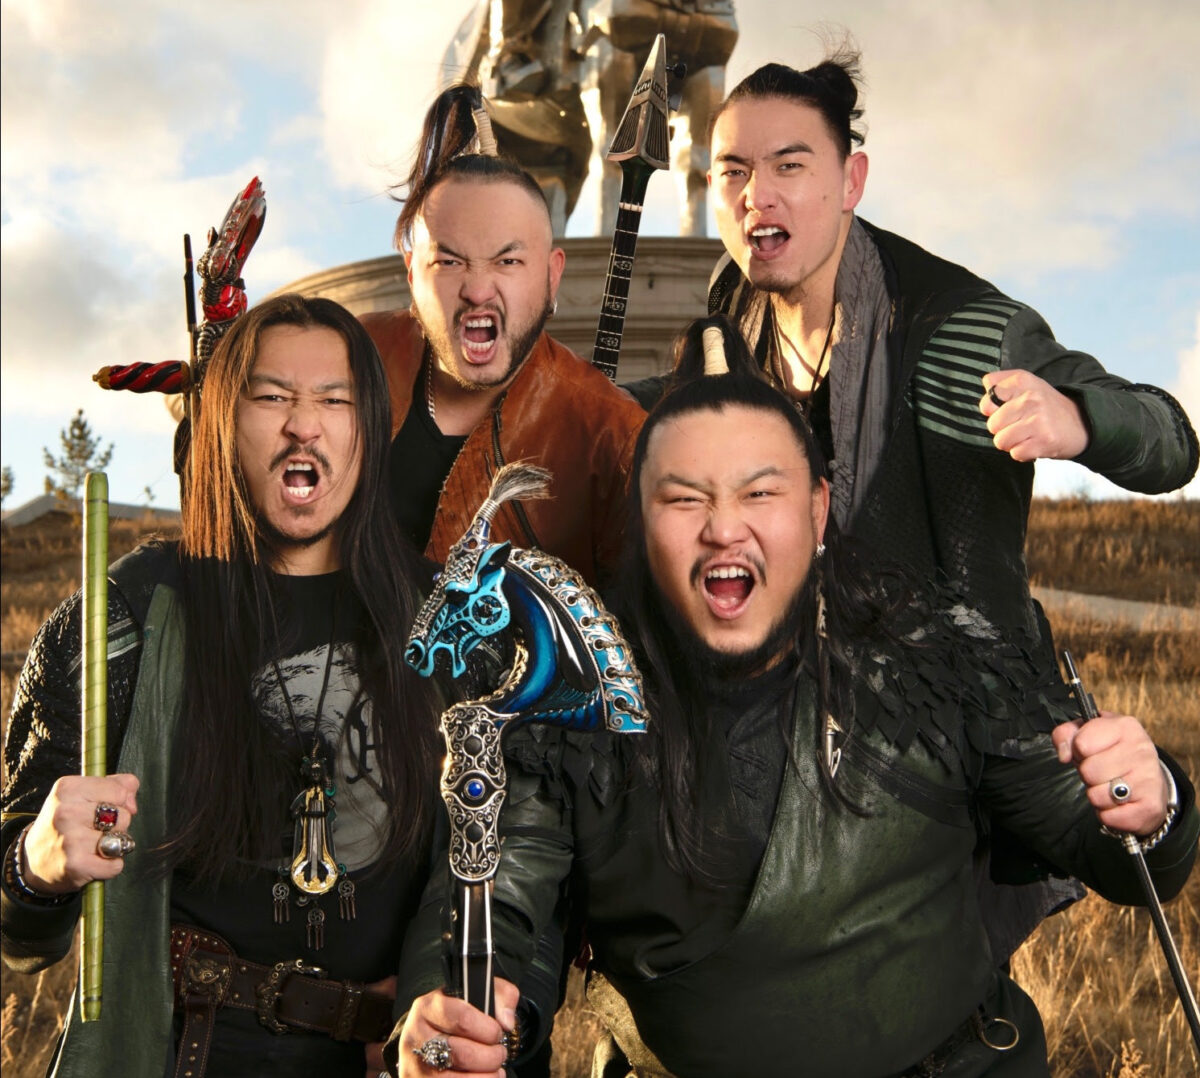 the-hu-to-appear-on-metallica-anniversary-project